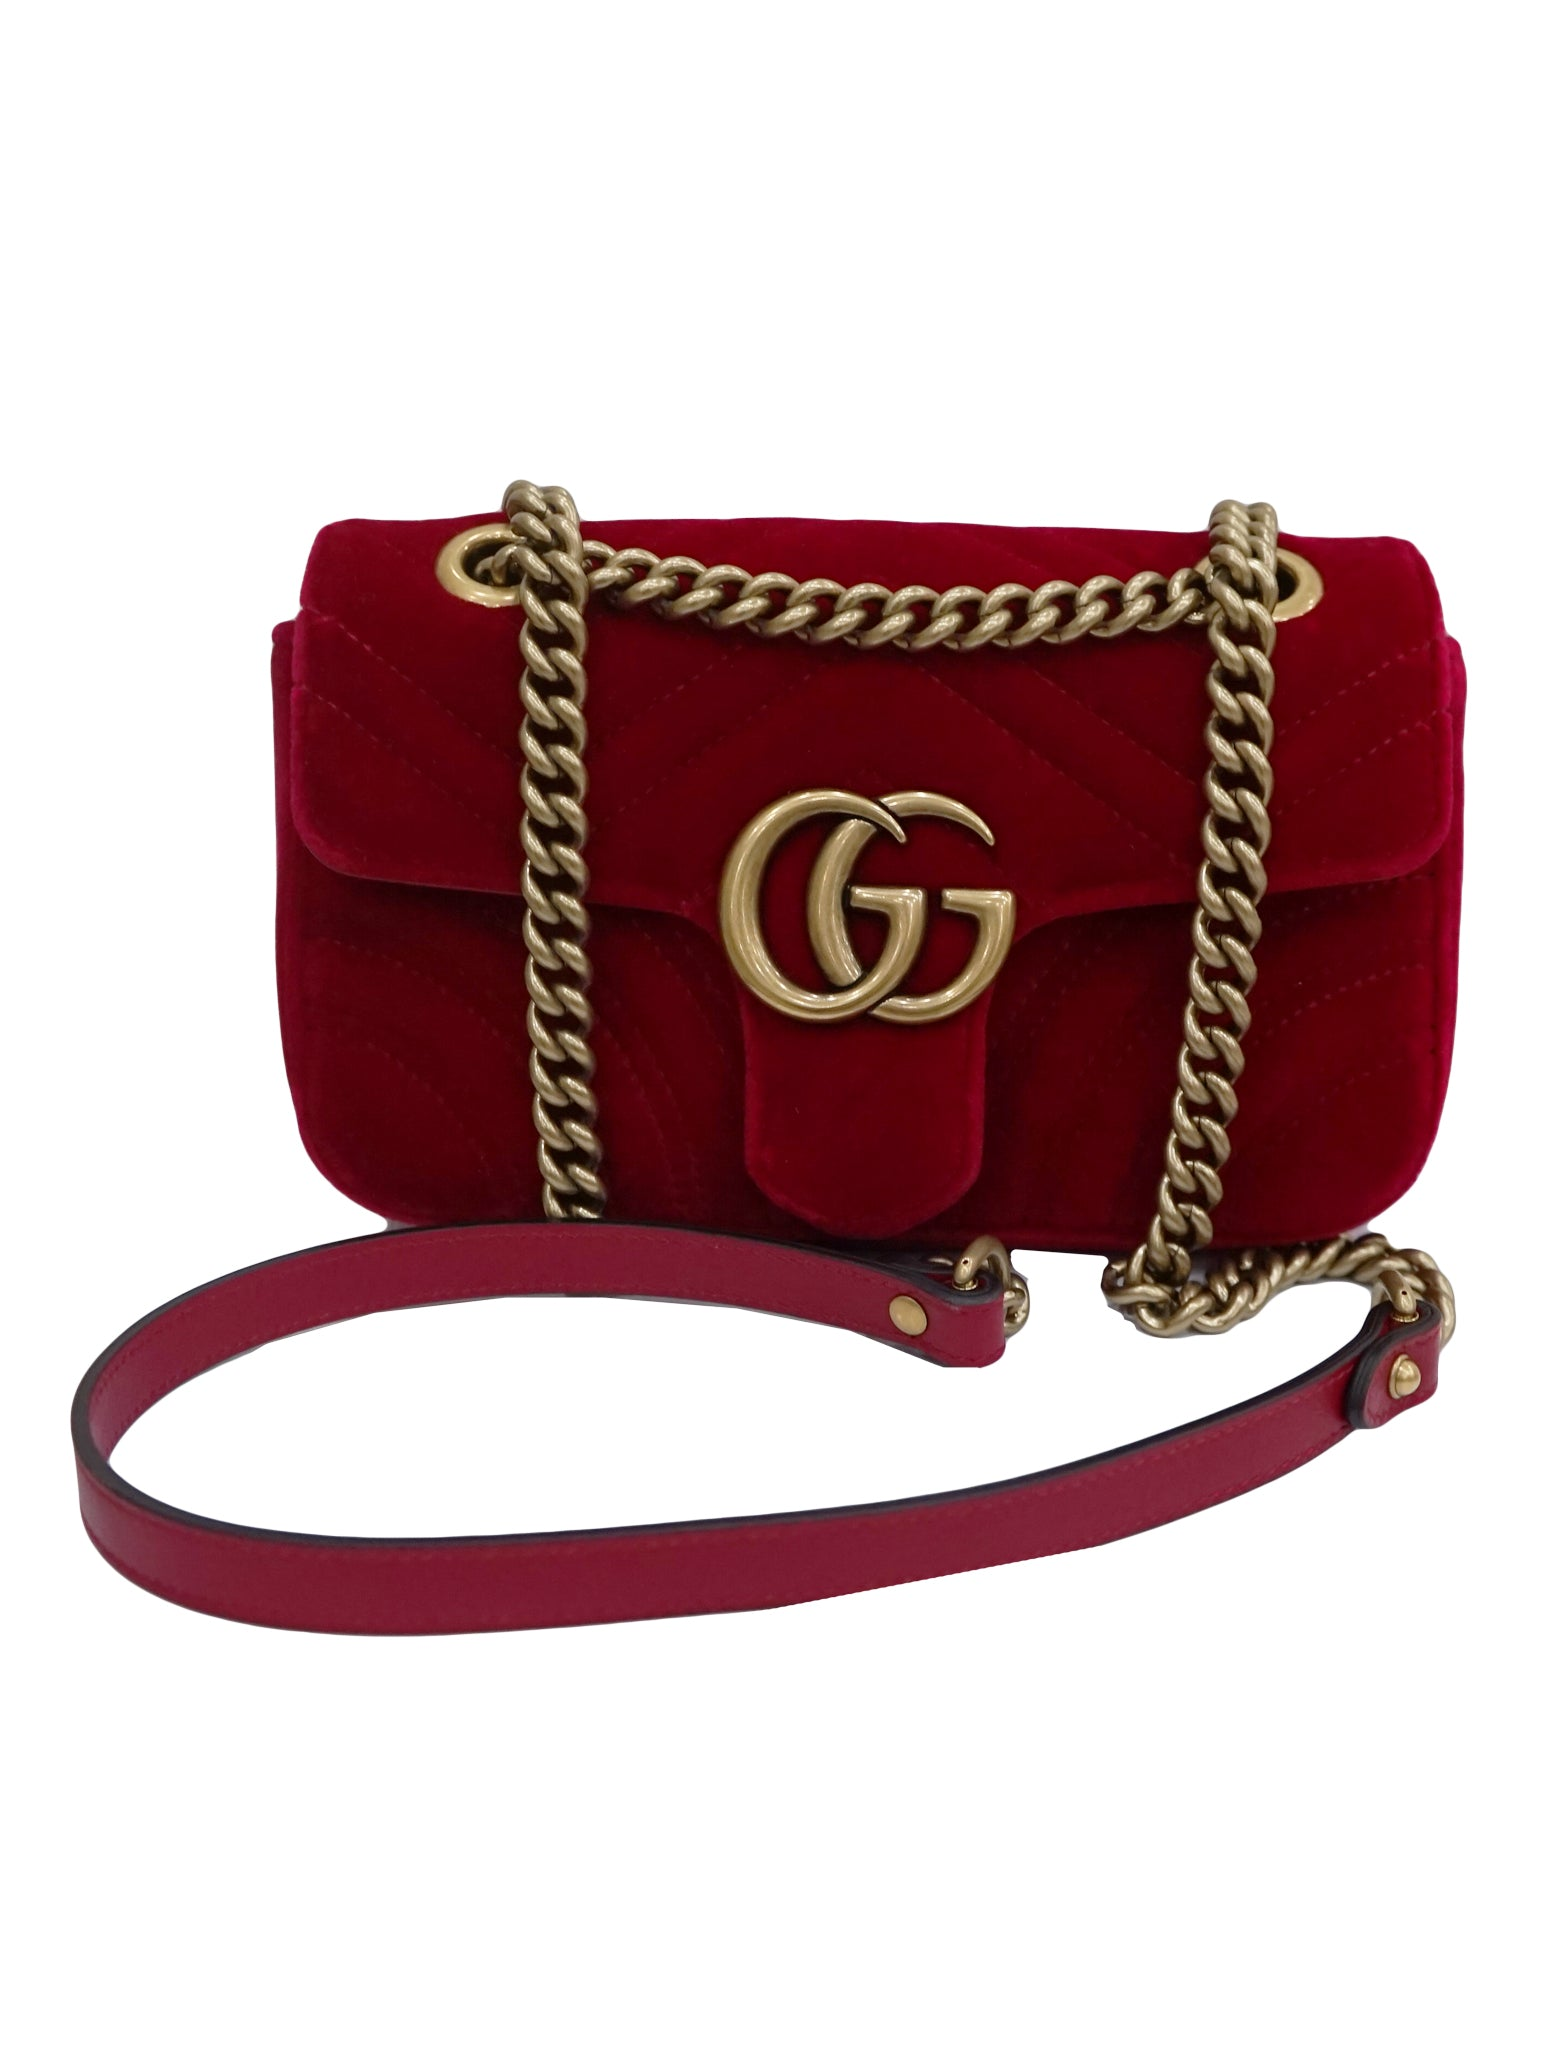 GG MARMONT MINI BAG